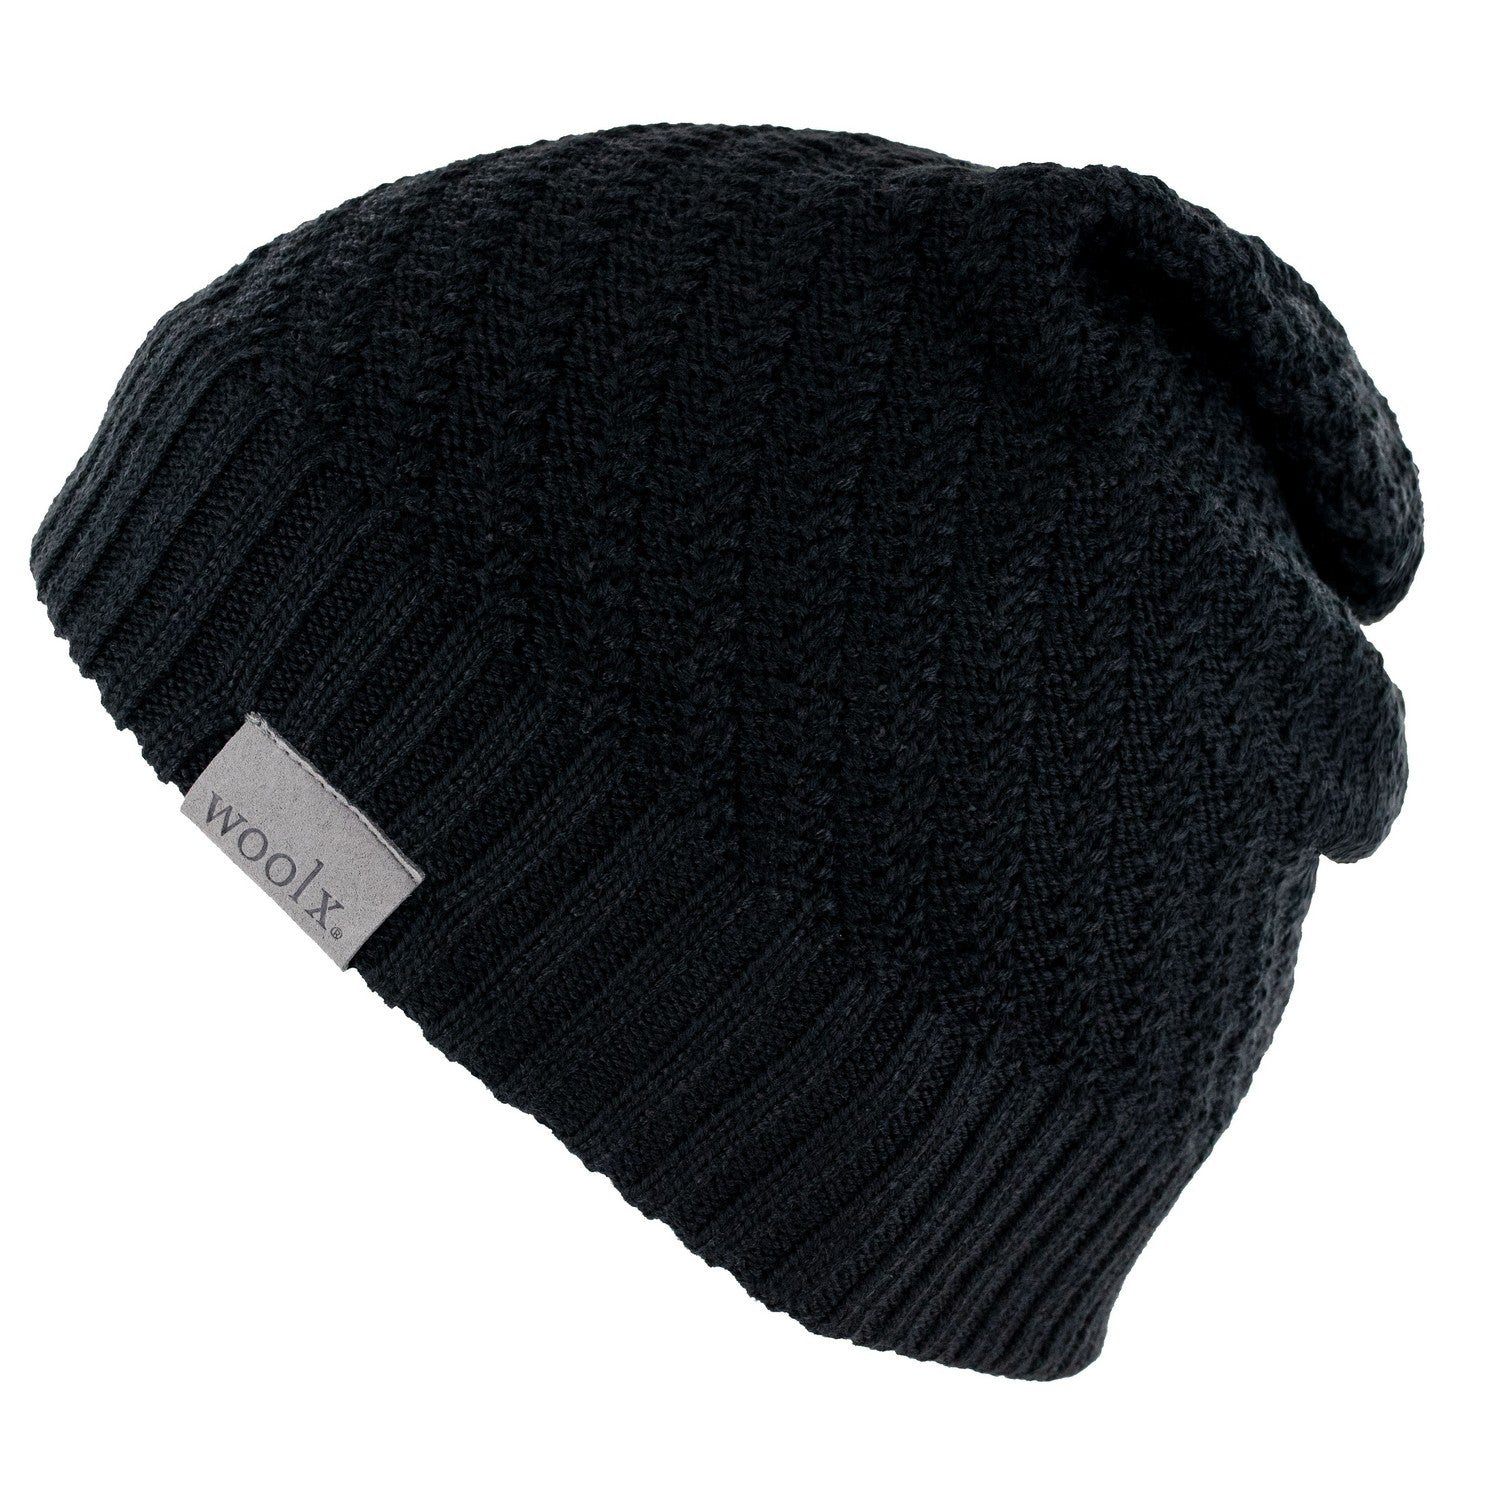 Women's Merino Wool Hat - Black